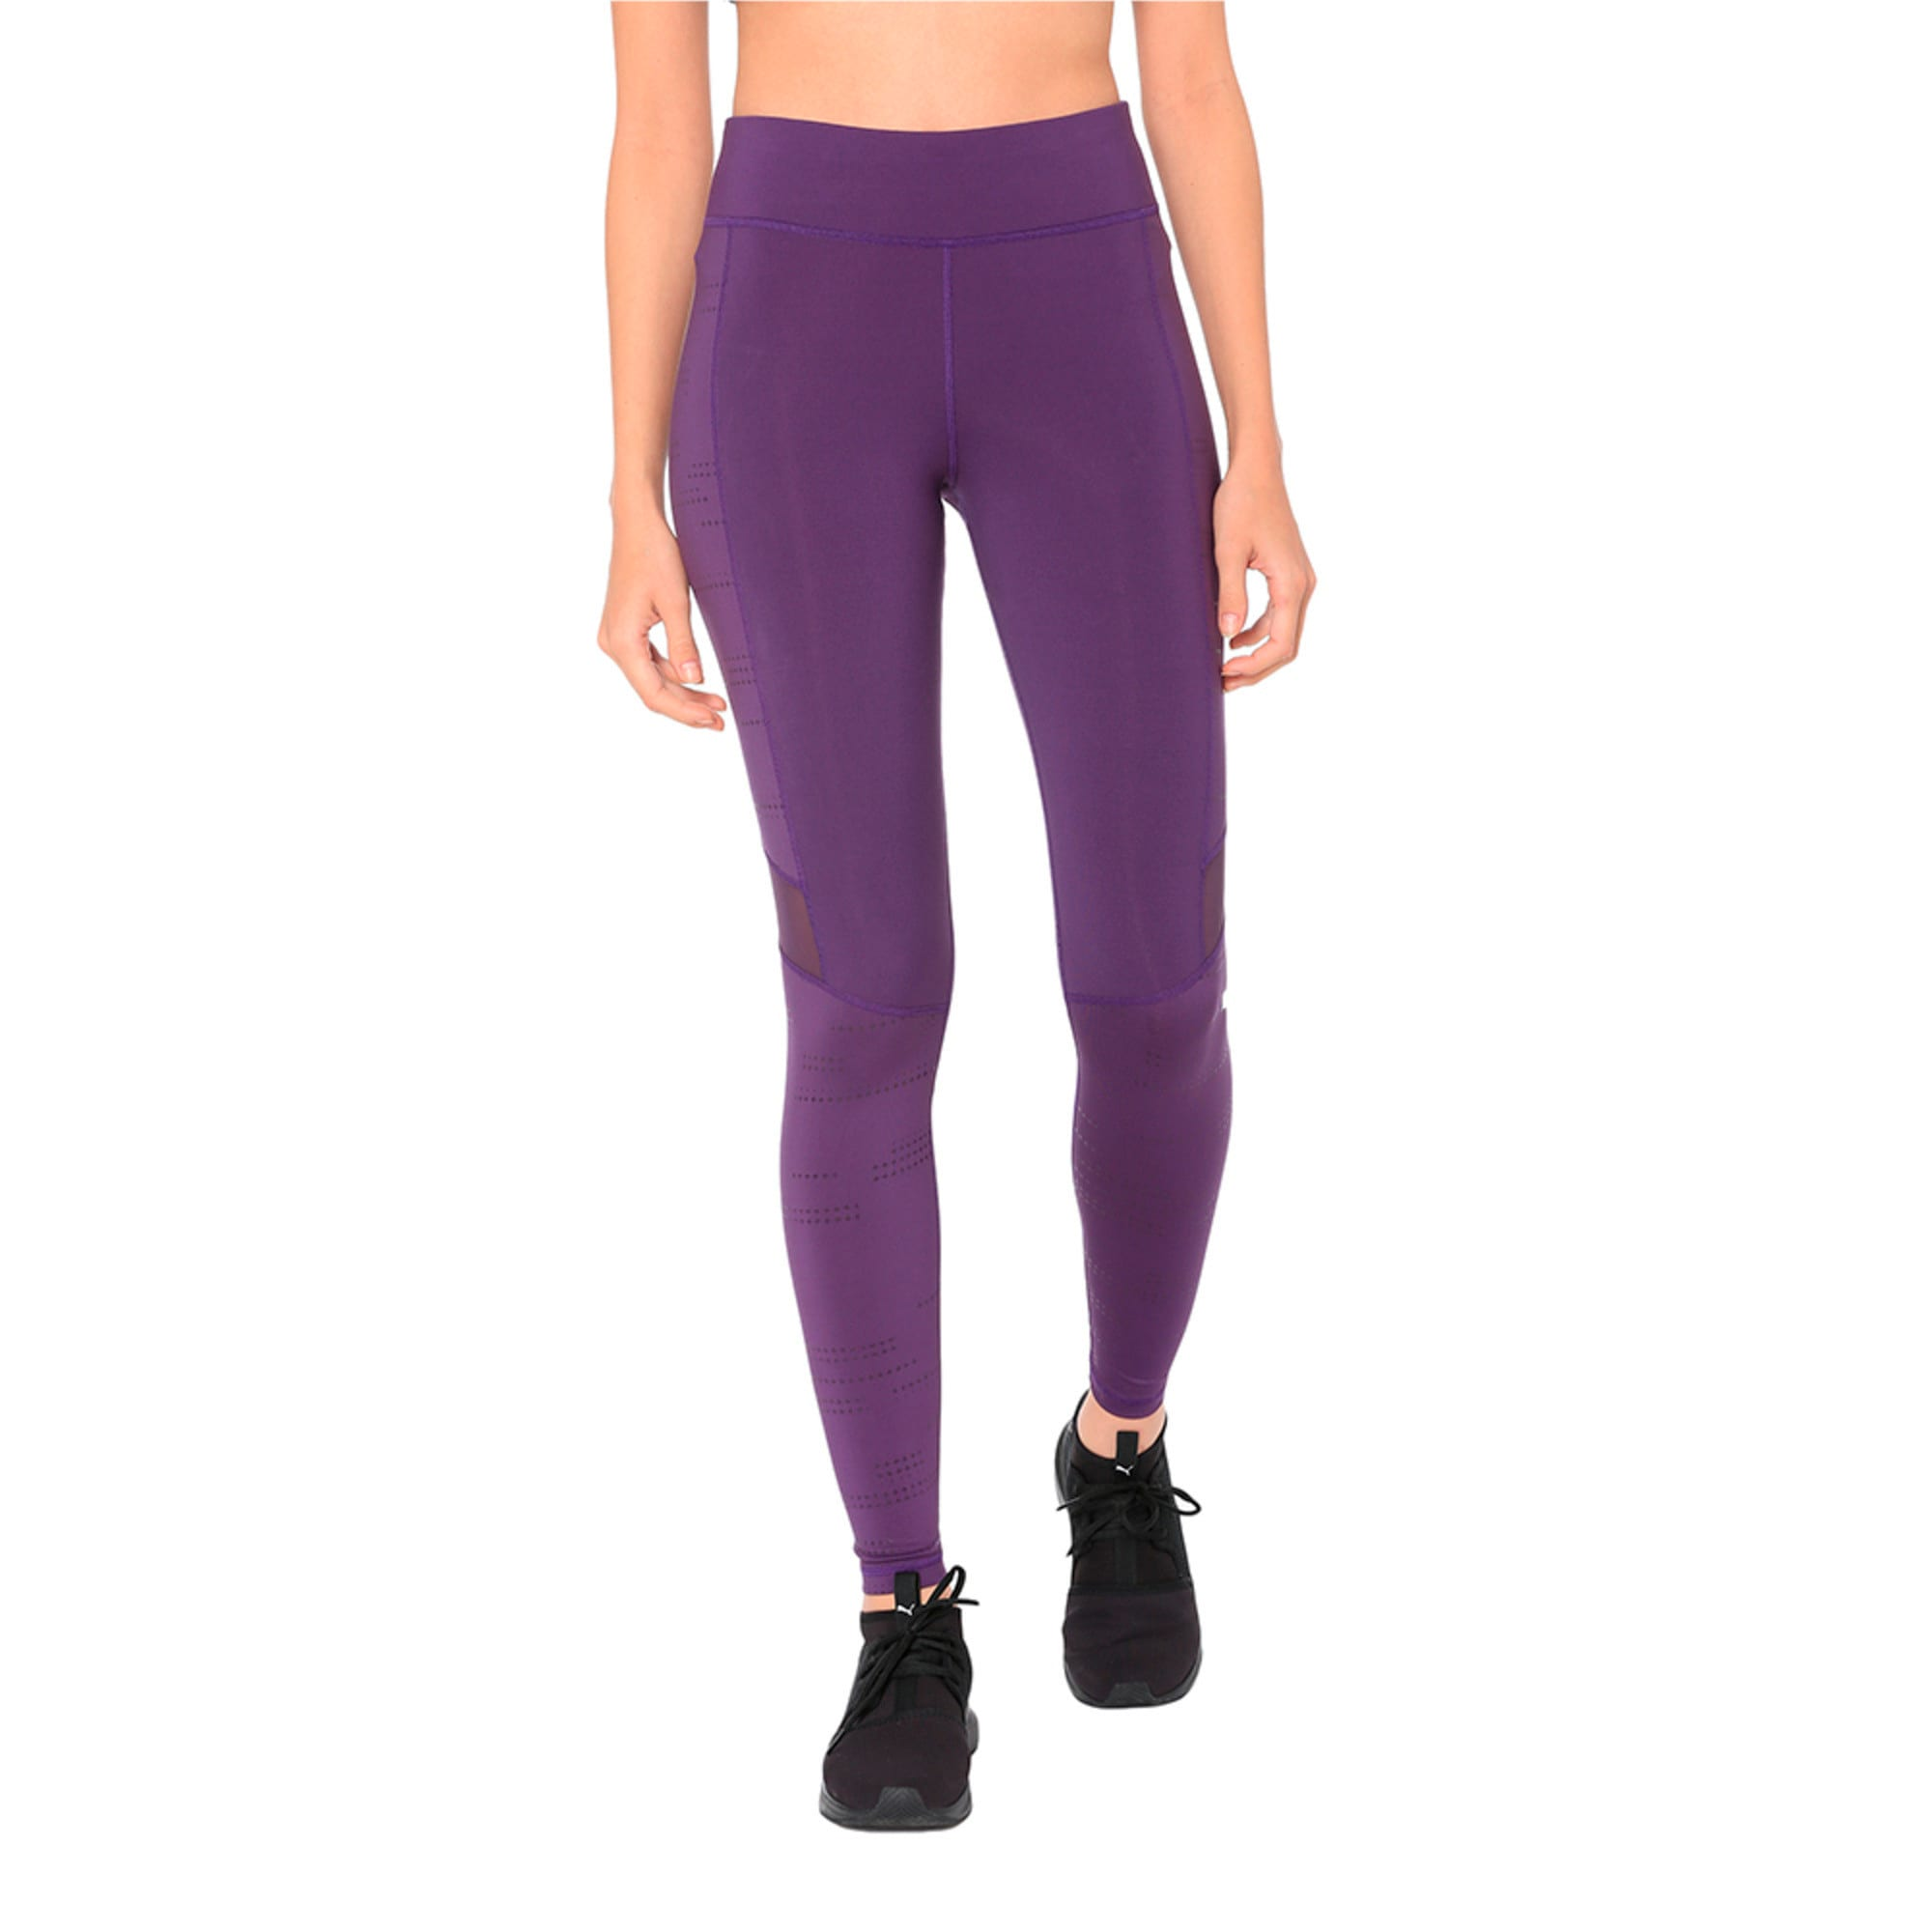 Thumbnail 1 of Ignite Women's Running Leggings, Indigo, medium-IND